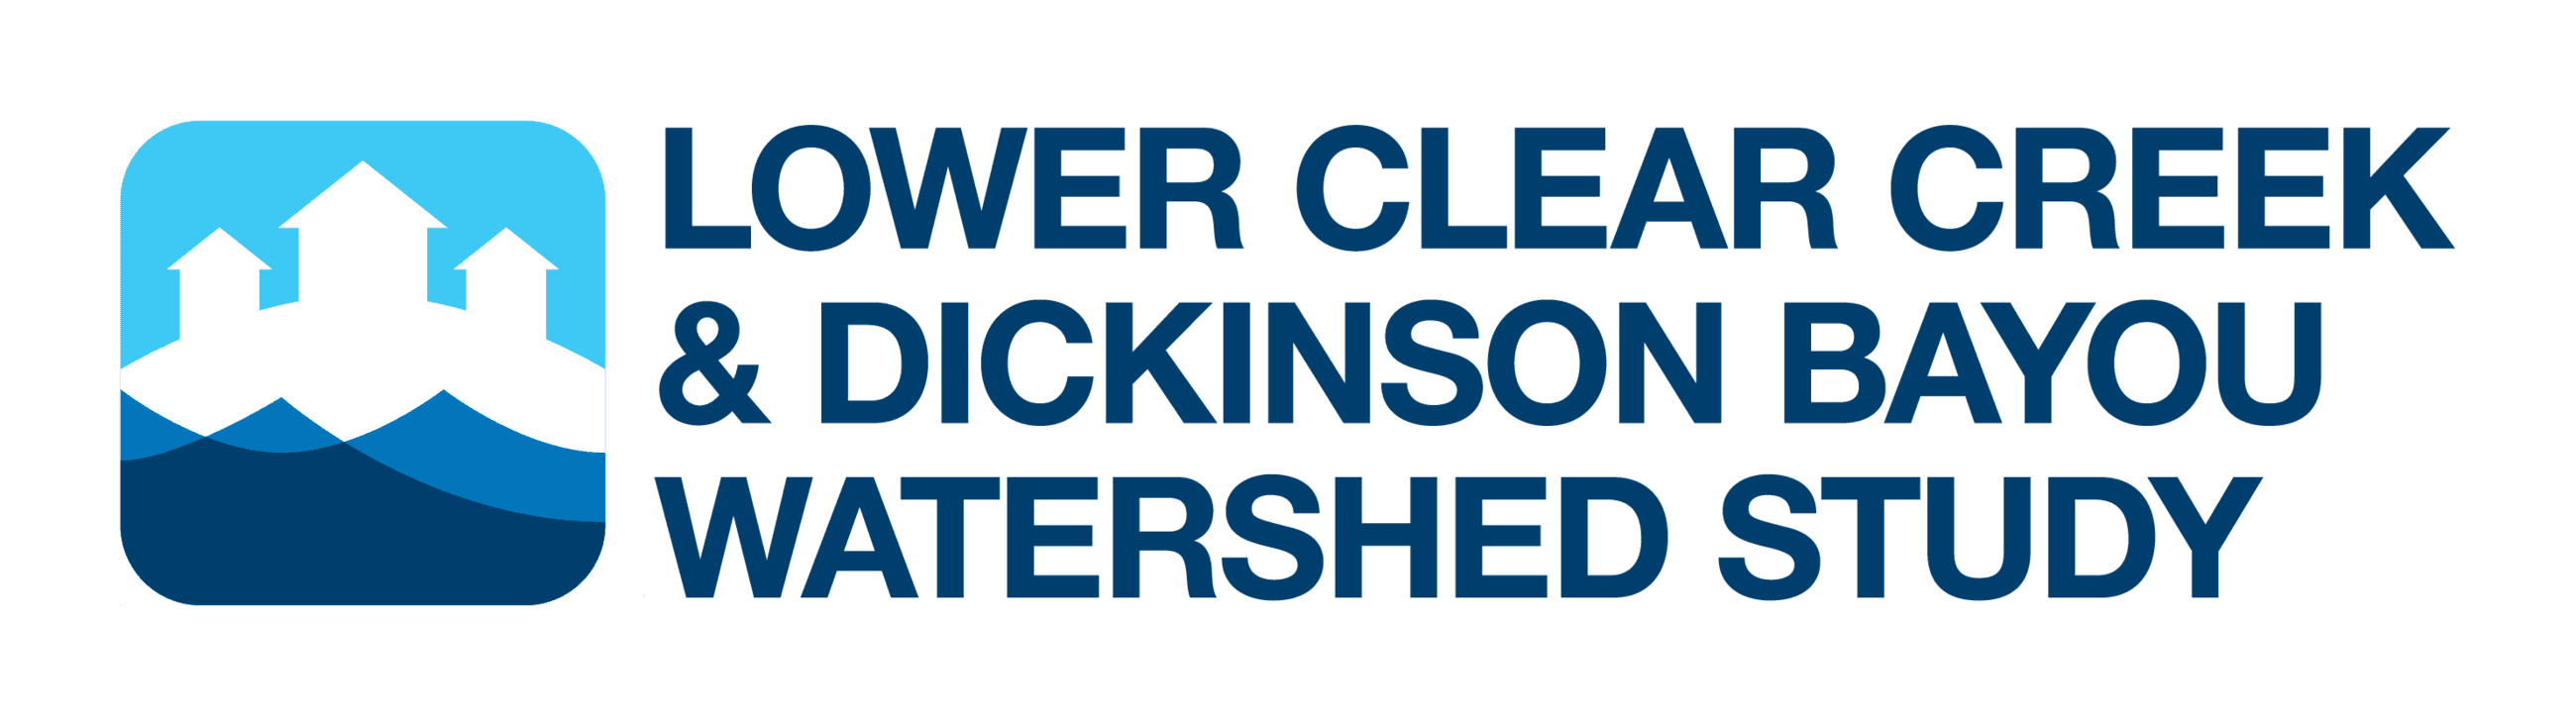 Lower Clear Creek and Dickinson Bayou Watershed Logo